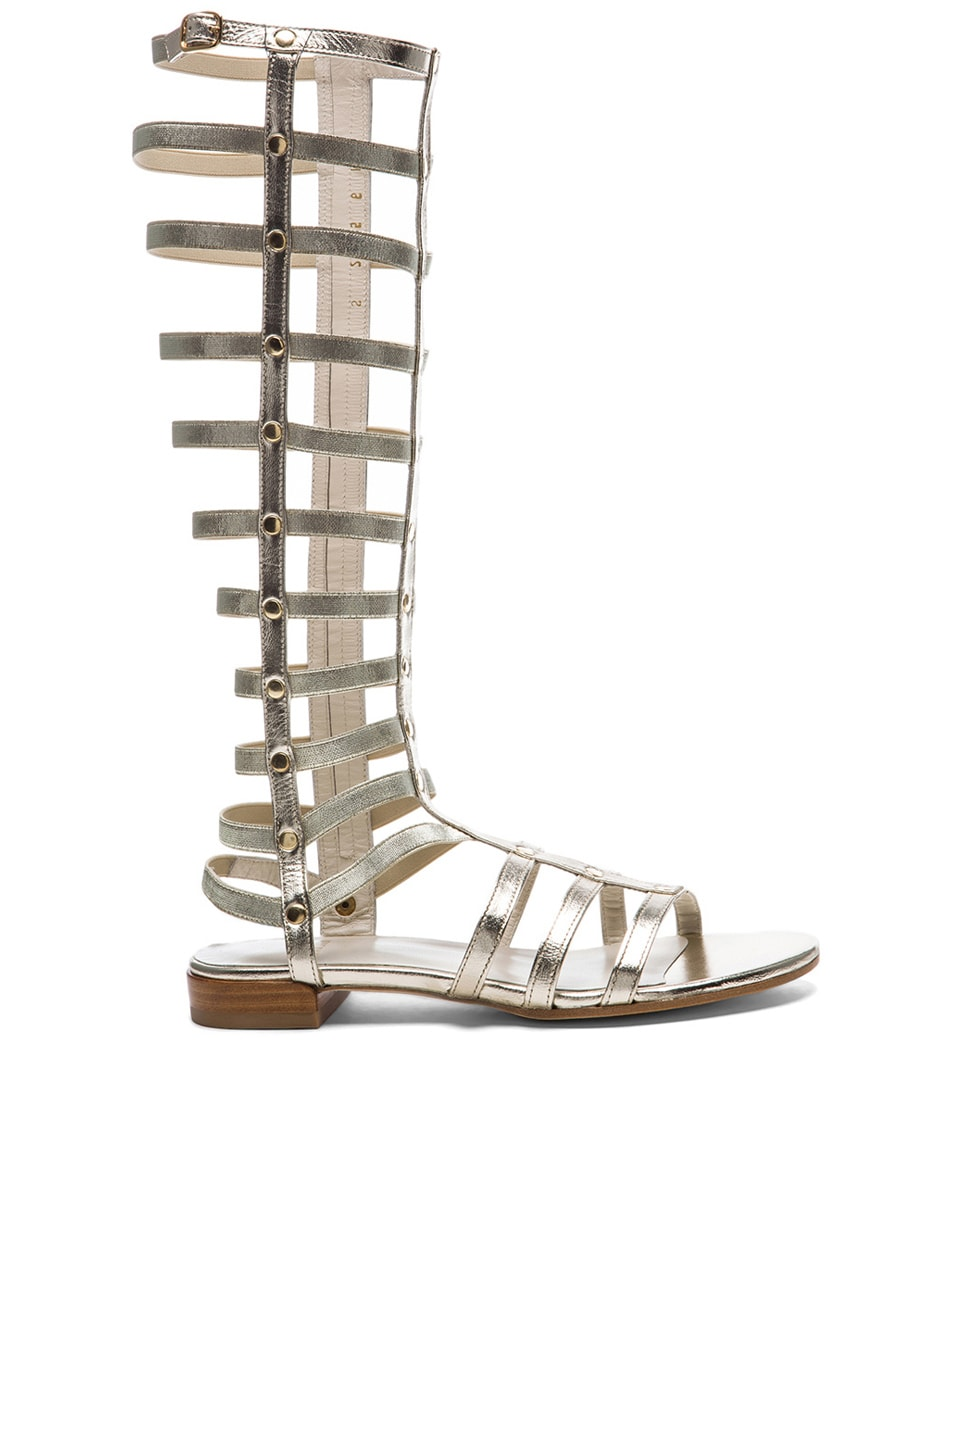 Image 1 of Stuart Weitzman Metallic Nappa Leather Gladiator Sandals in Cava